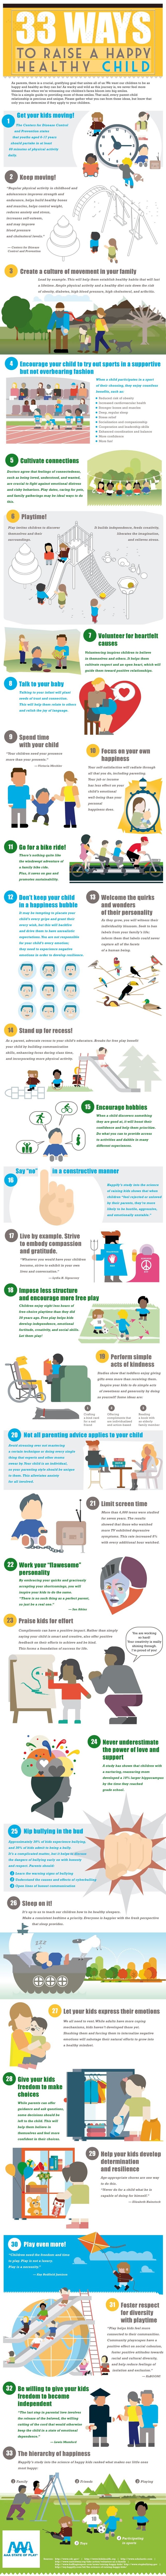 33 Ways to Raise a Happy, Healthy Child #infographic